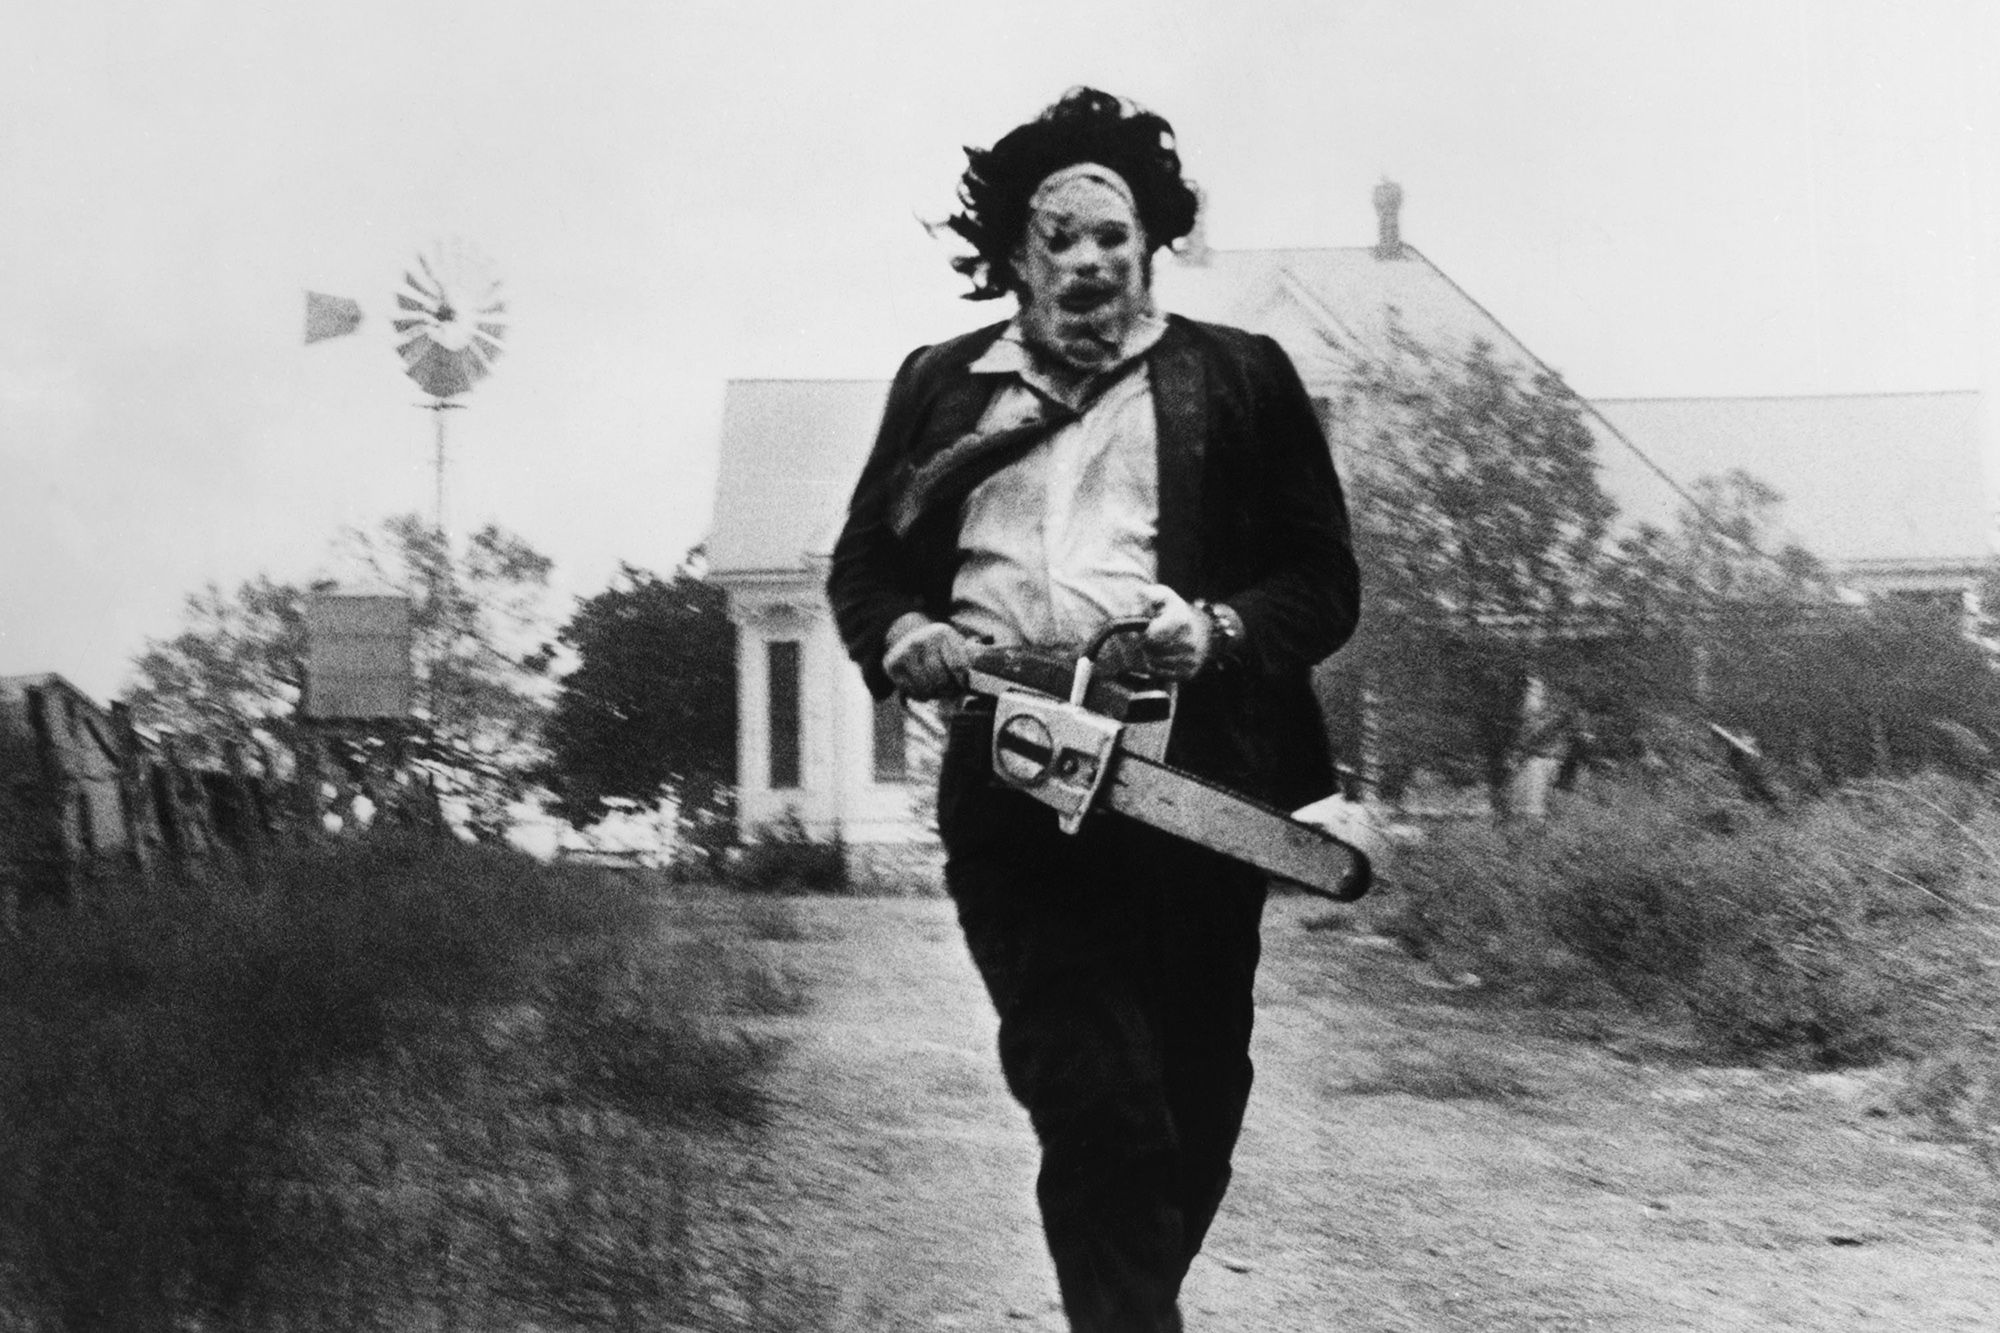 El reboot de The Texas Chainsaw Massacre ficha directores